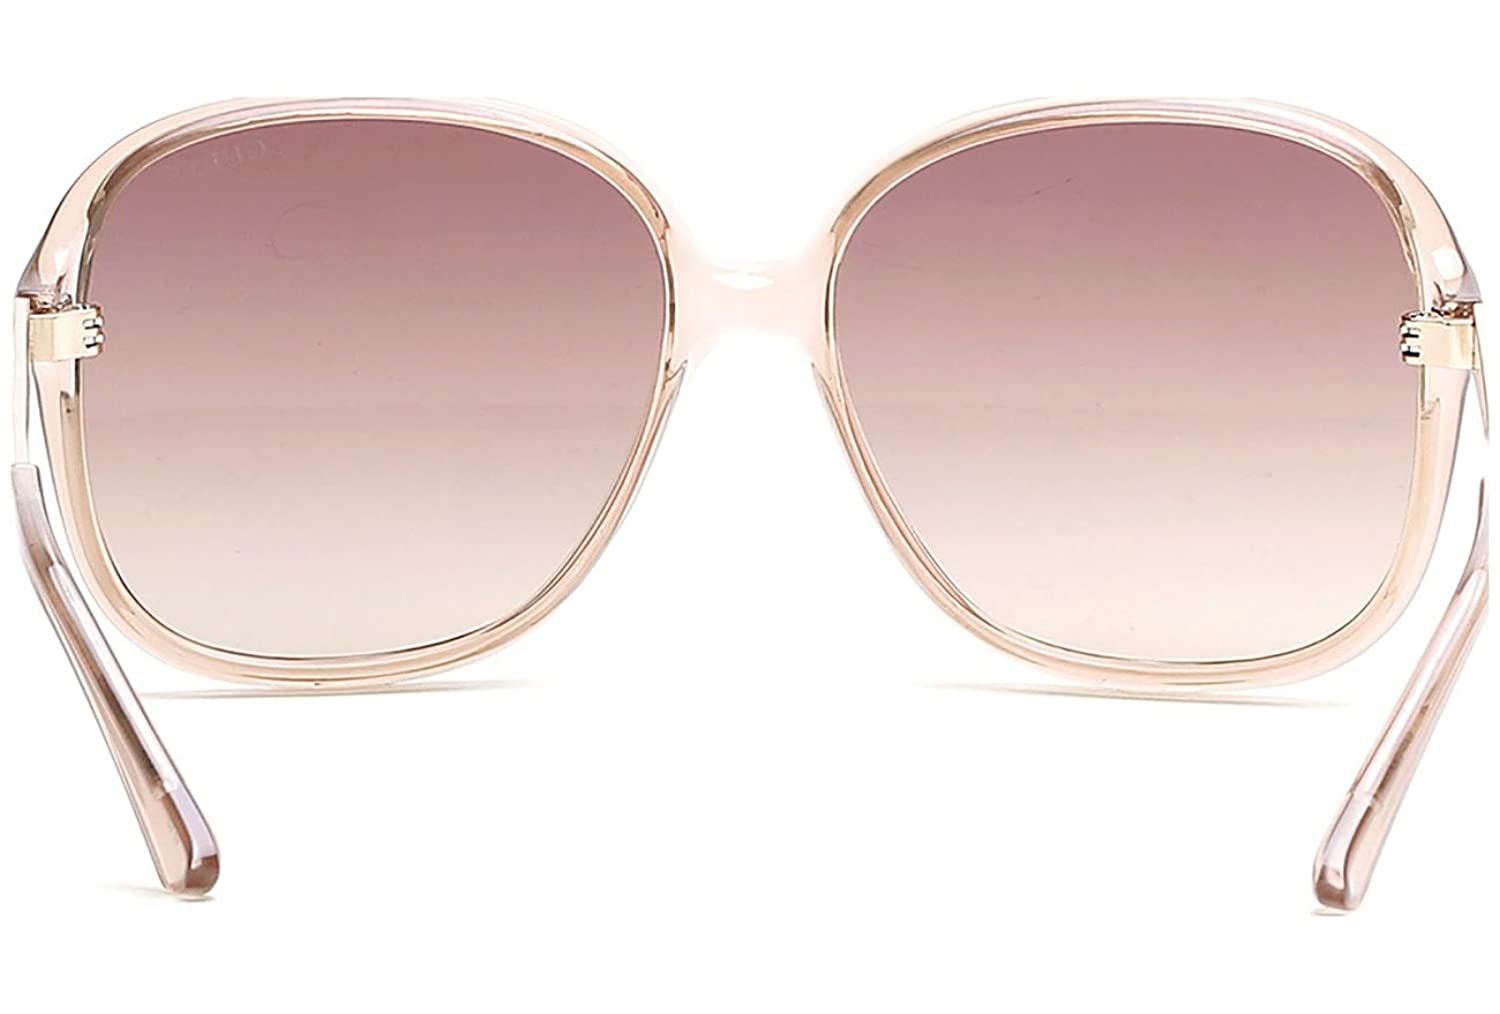 Guess GU7462 57F Pink Transparent GU7462 Butterfly Sunglasses Lens Category  2 S: Amazon.co.uk: Clothing